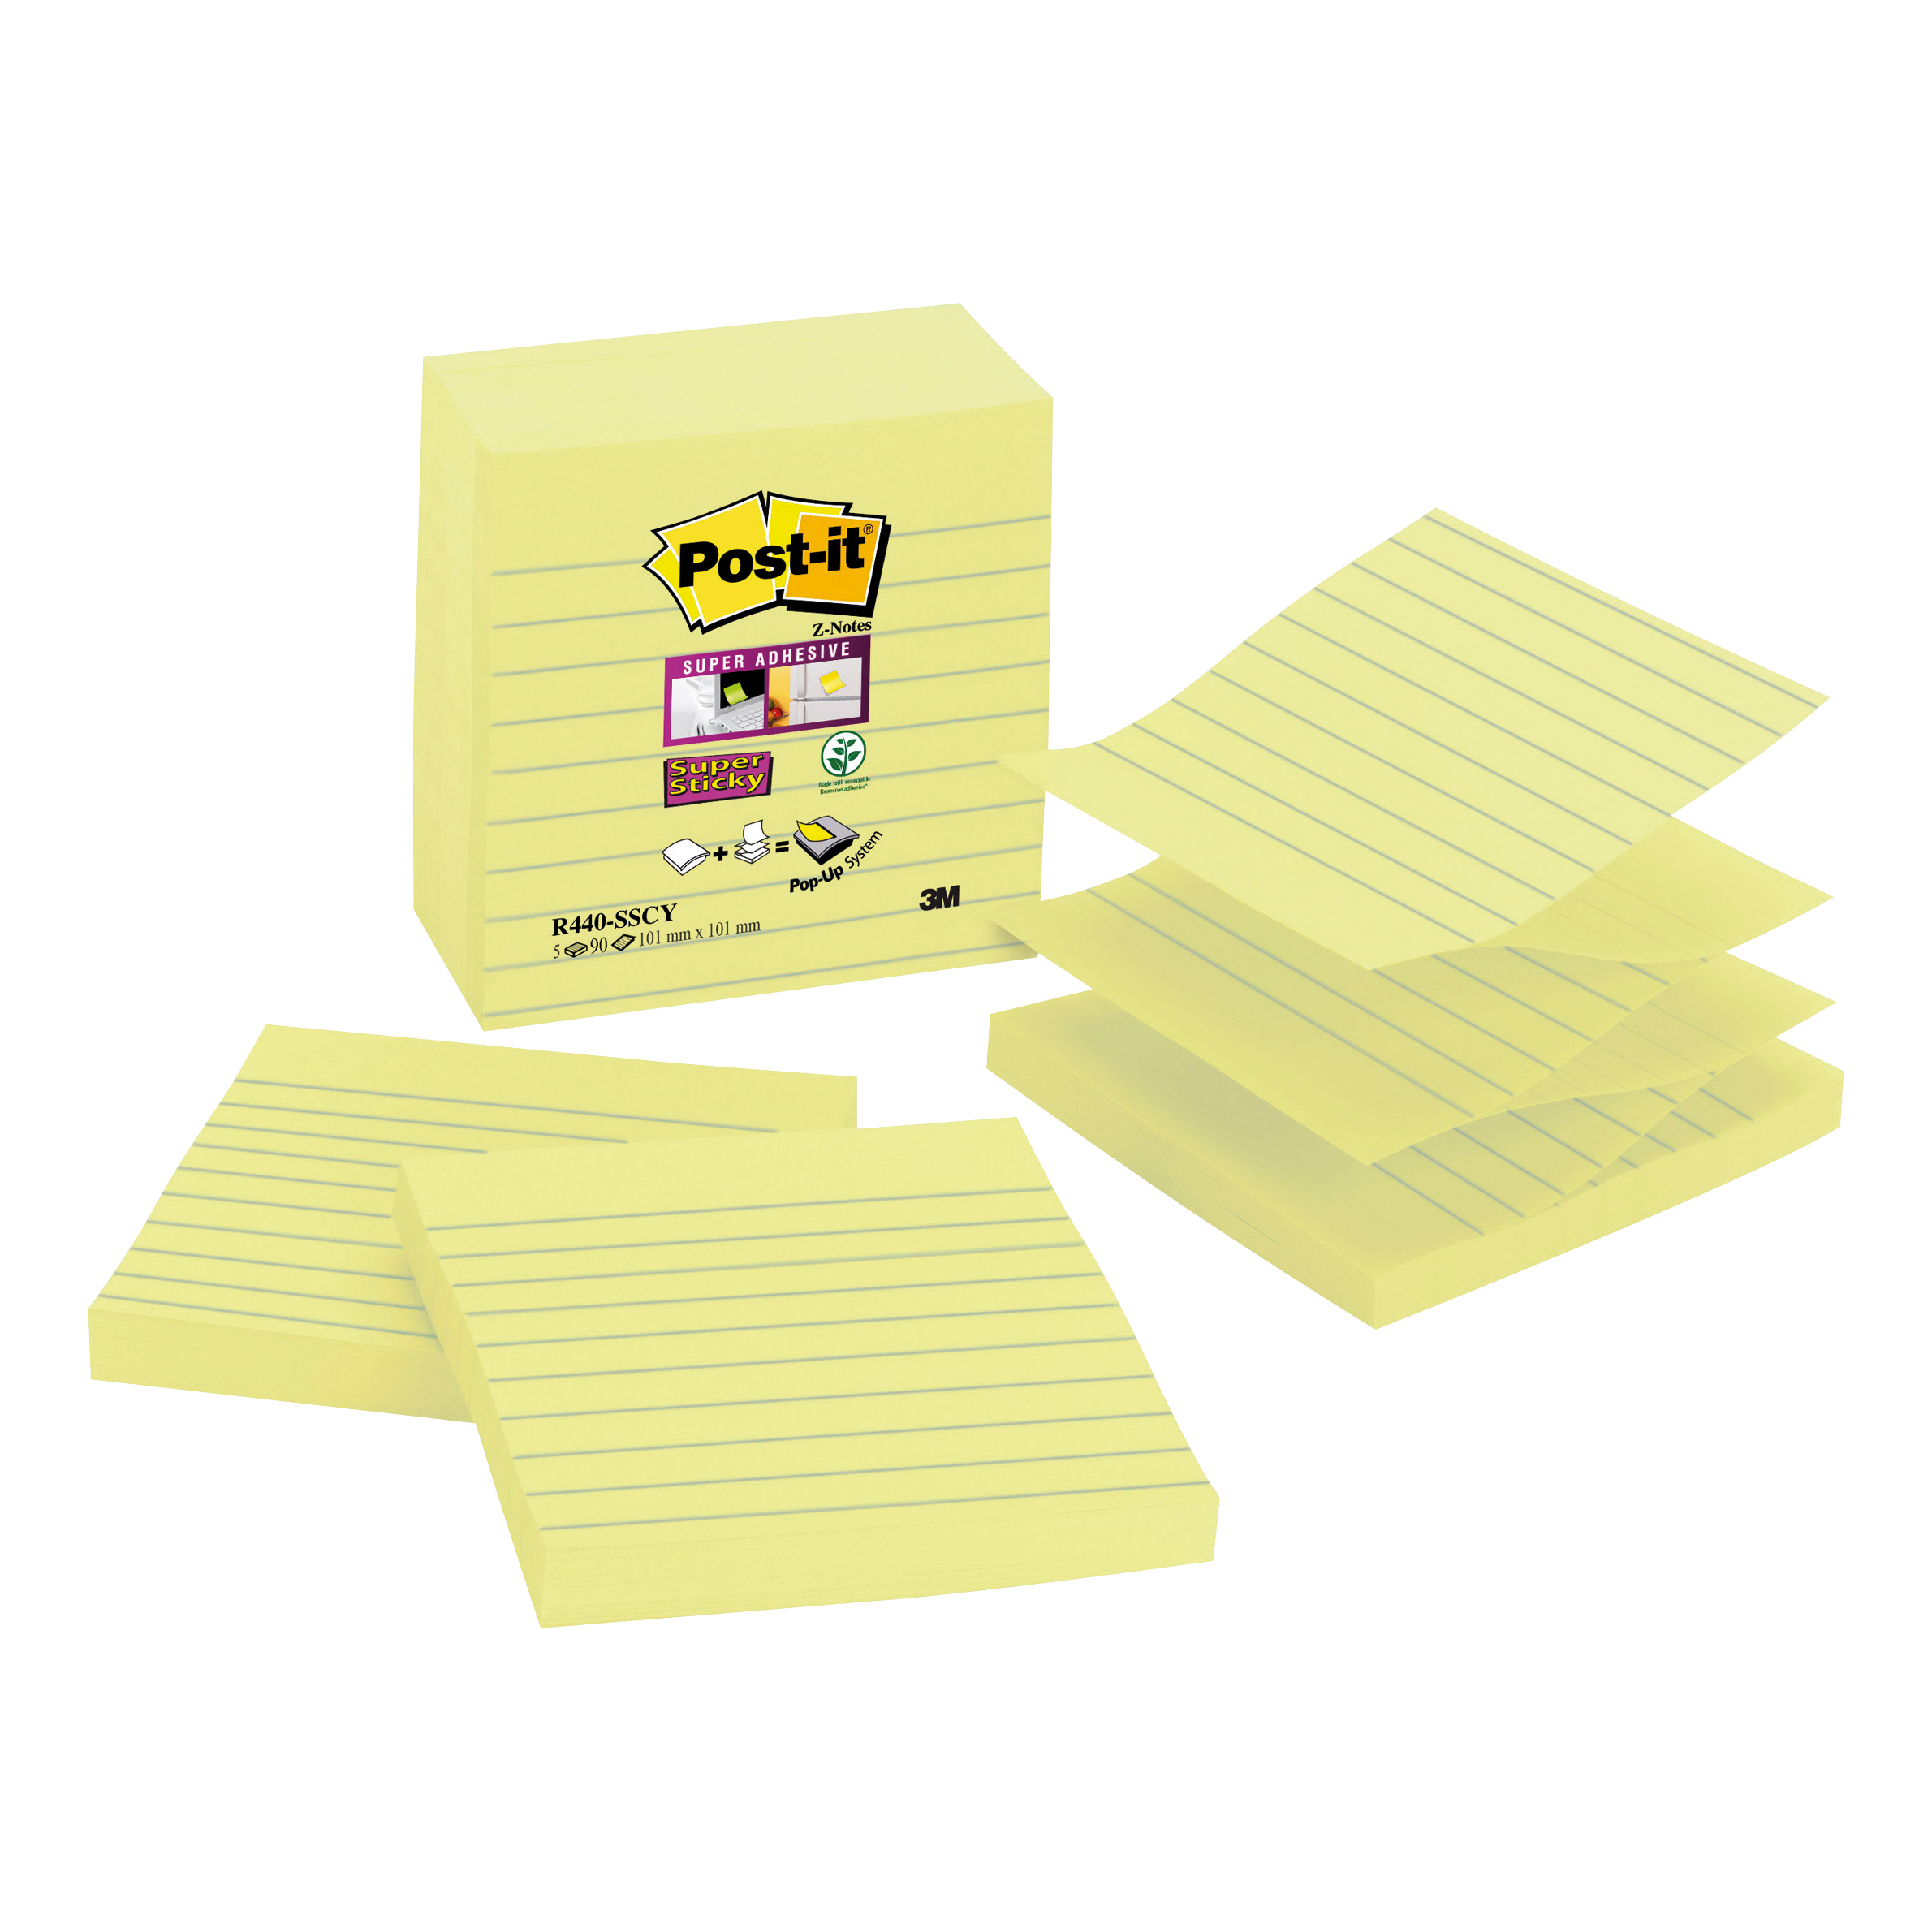 Post-it Z-notes Lined 101x101mm Yellow Ref R440-SSCY-EU Pack 5